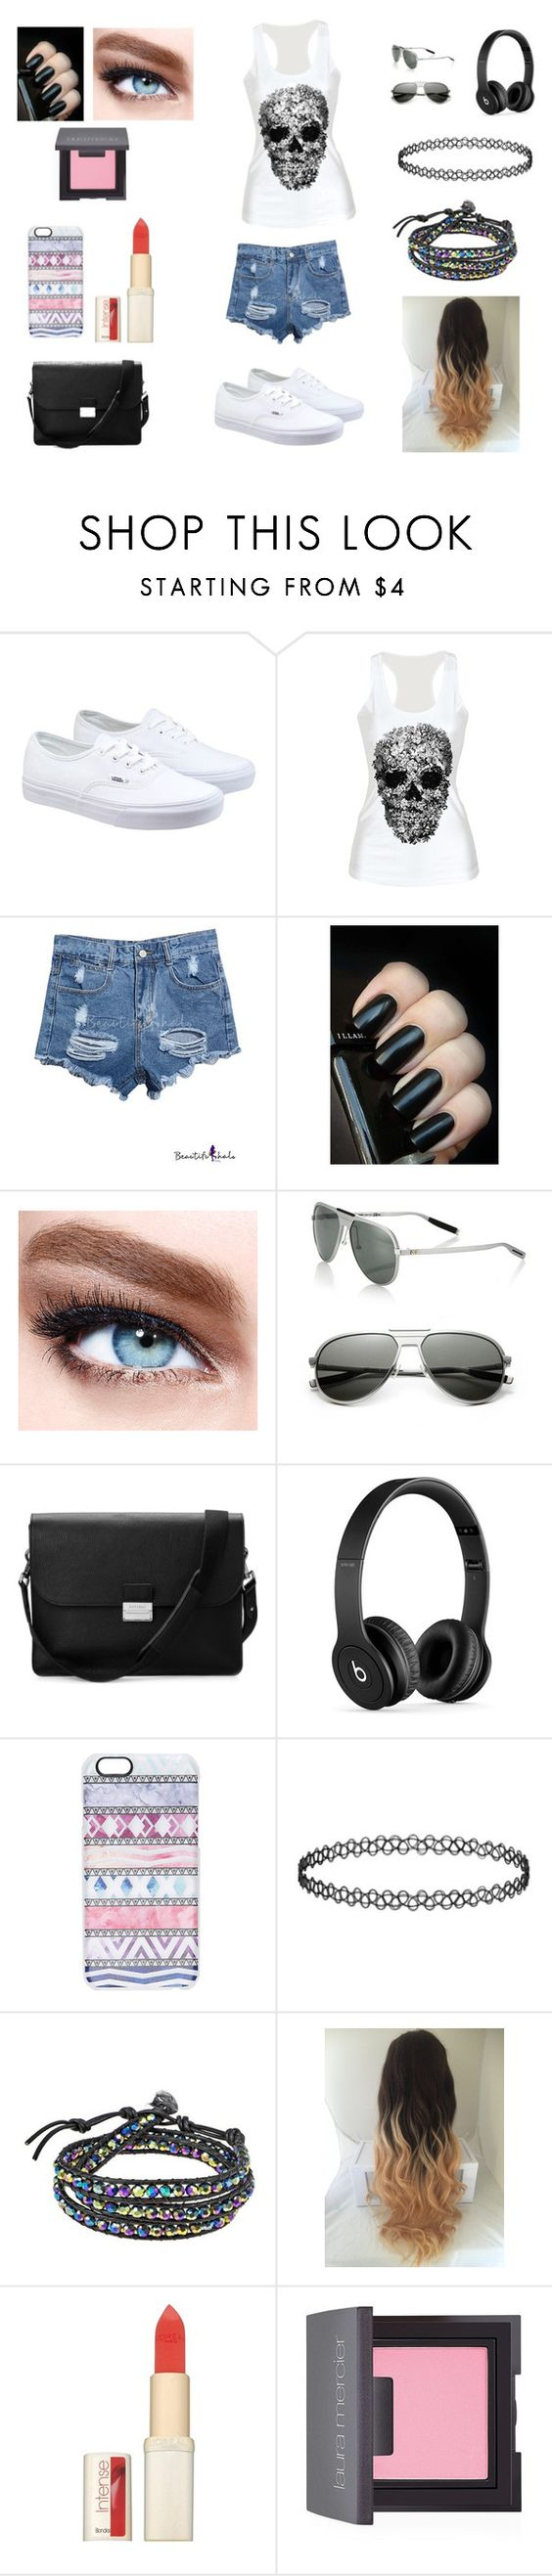 """""""#Skull"""" by rubies0205 ❤ liked on Polyvore featuring Vans, Maybelline, Dior Homme, Aspinal of London, Beats by Dr. Dre, Casetify, AeraVida, L'Oréal Paris and Laura Mercier"""